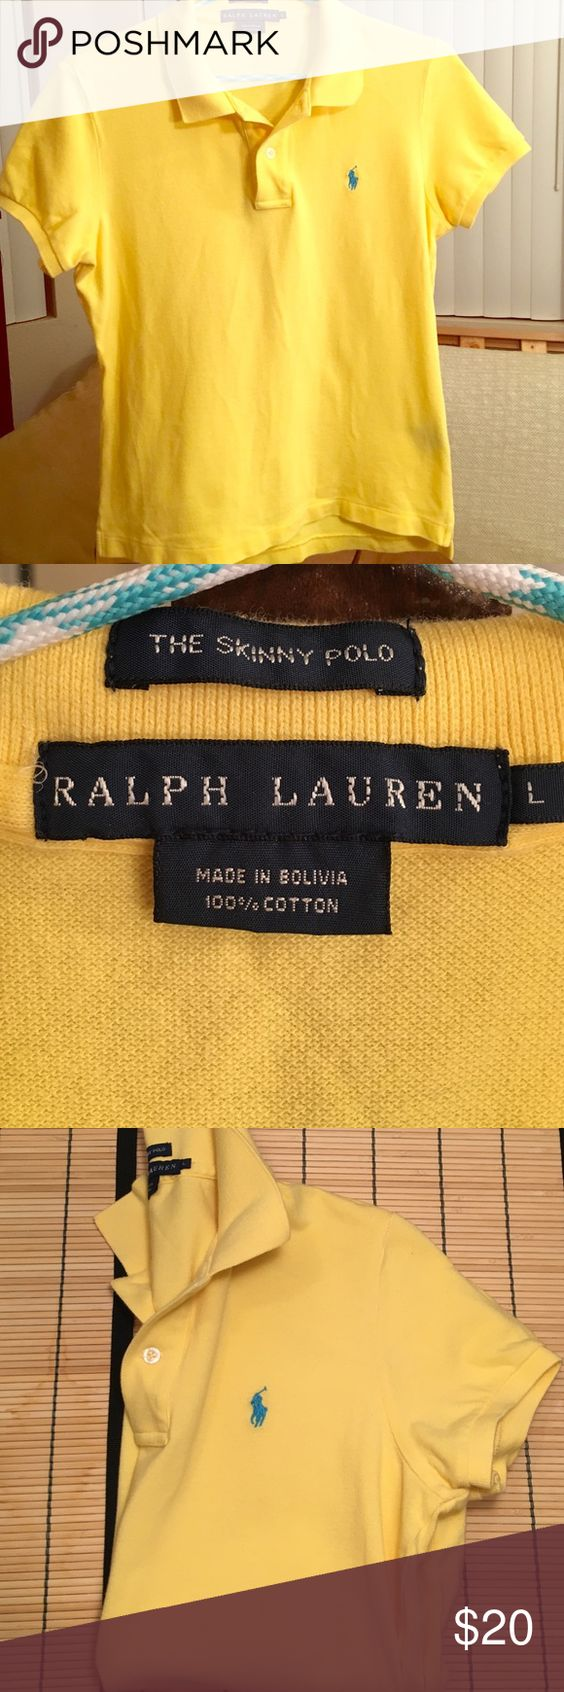 Ralph Lauren PoloLrgSkinny FitBright Yellow Great Condition Ralph Lauren Polo Shirt  Dandelion Yellow with Turquoise Polo Logo  Skinny Fit Large (Will Fit Snug/More Like a Medium)  Additional Colors Available  See Closet Listings for More!! Ralph Lauren Tops Tees - Short Sleeve